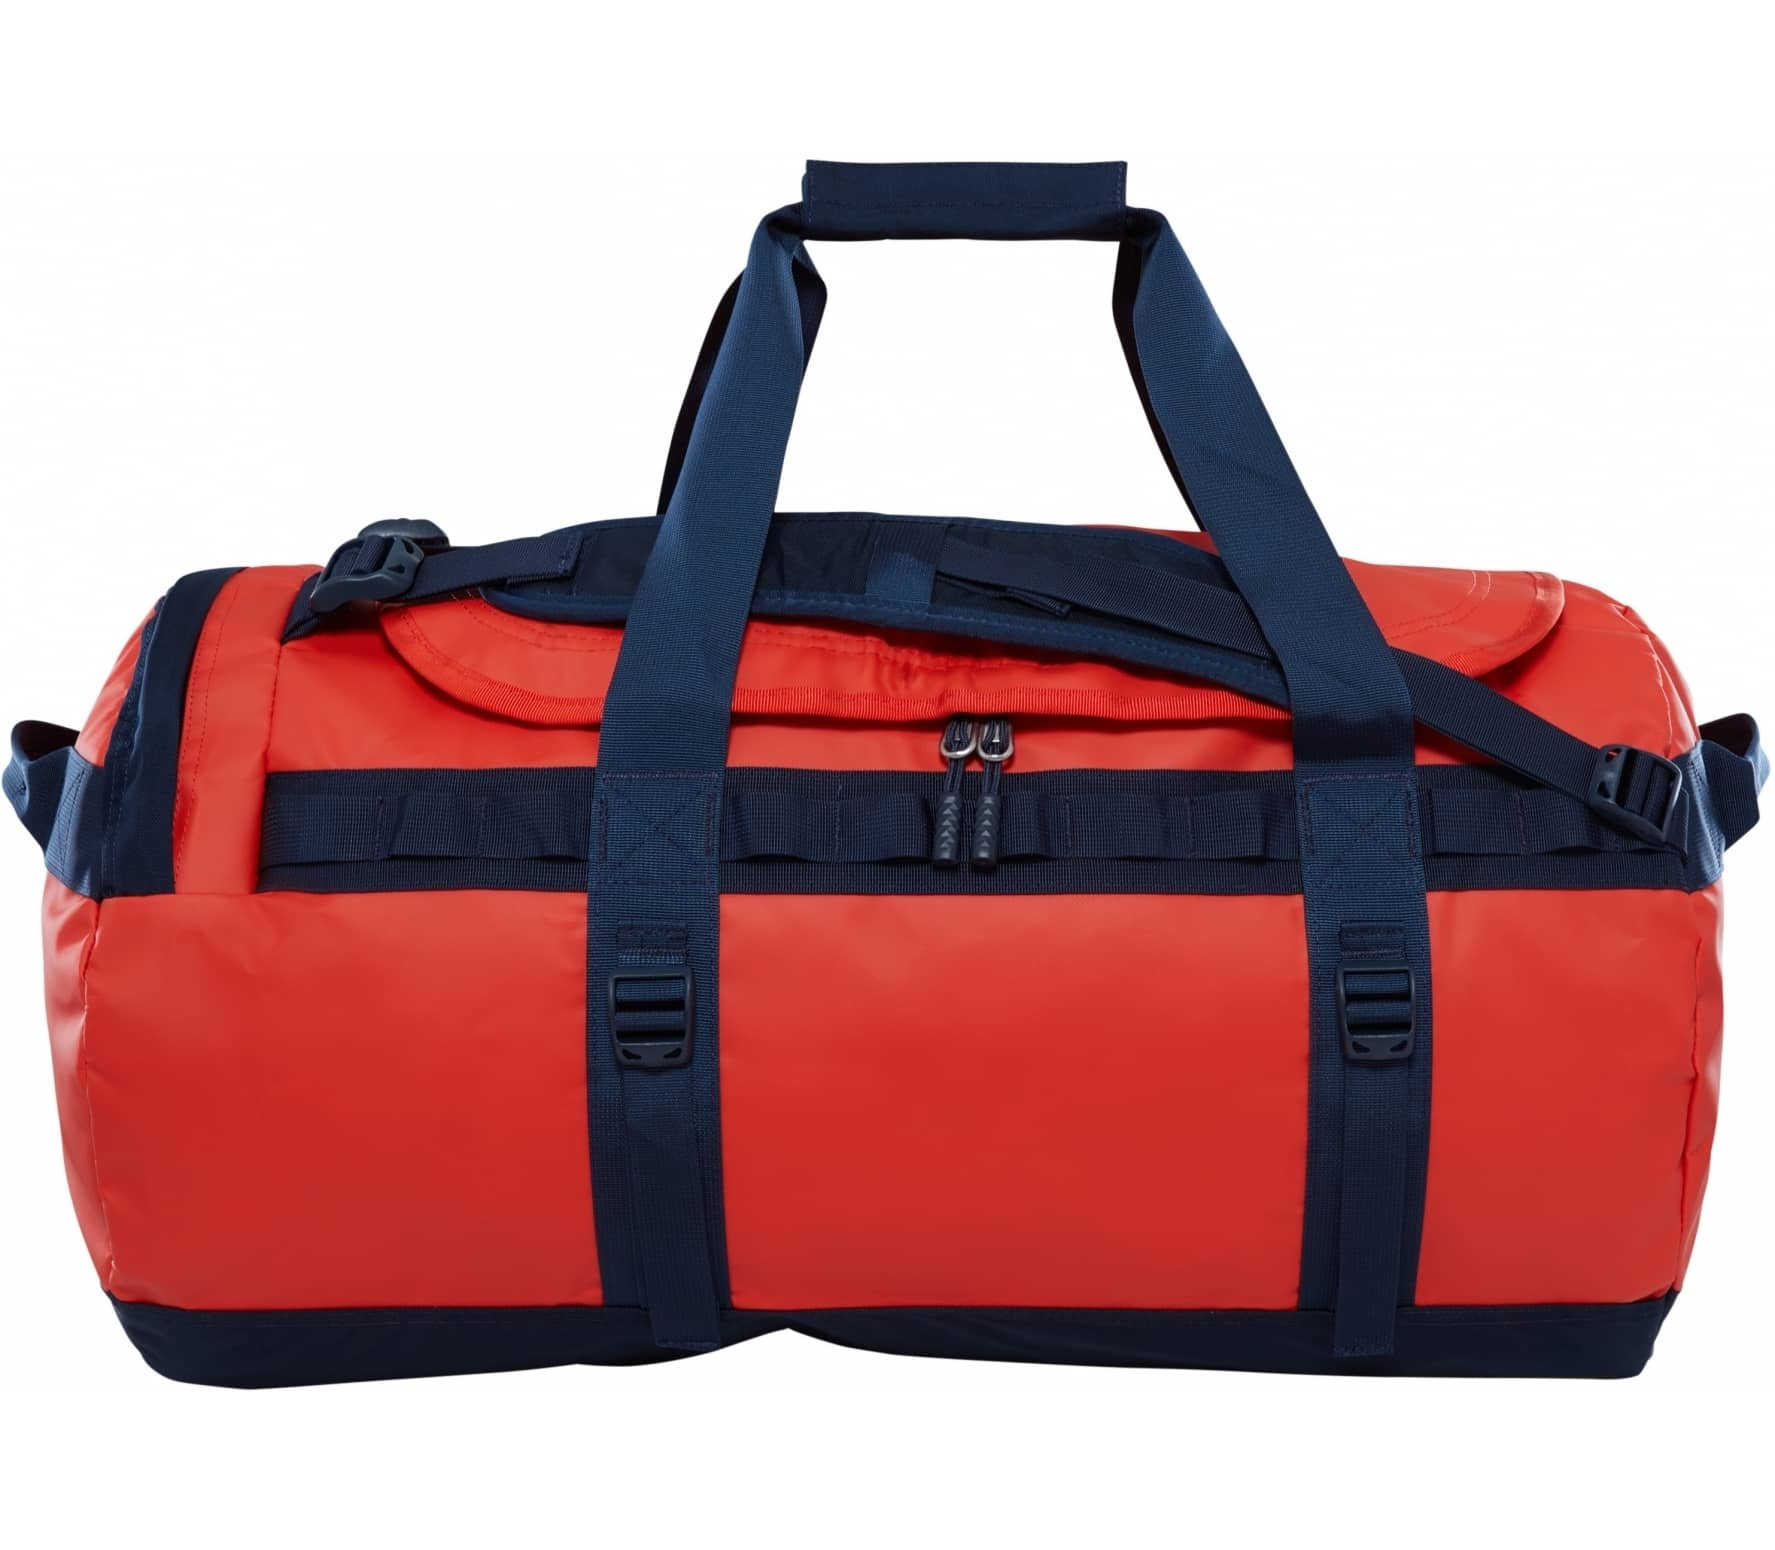 The North Face - Base Camp M duffel bag (orange/dark blue) thumbnail